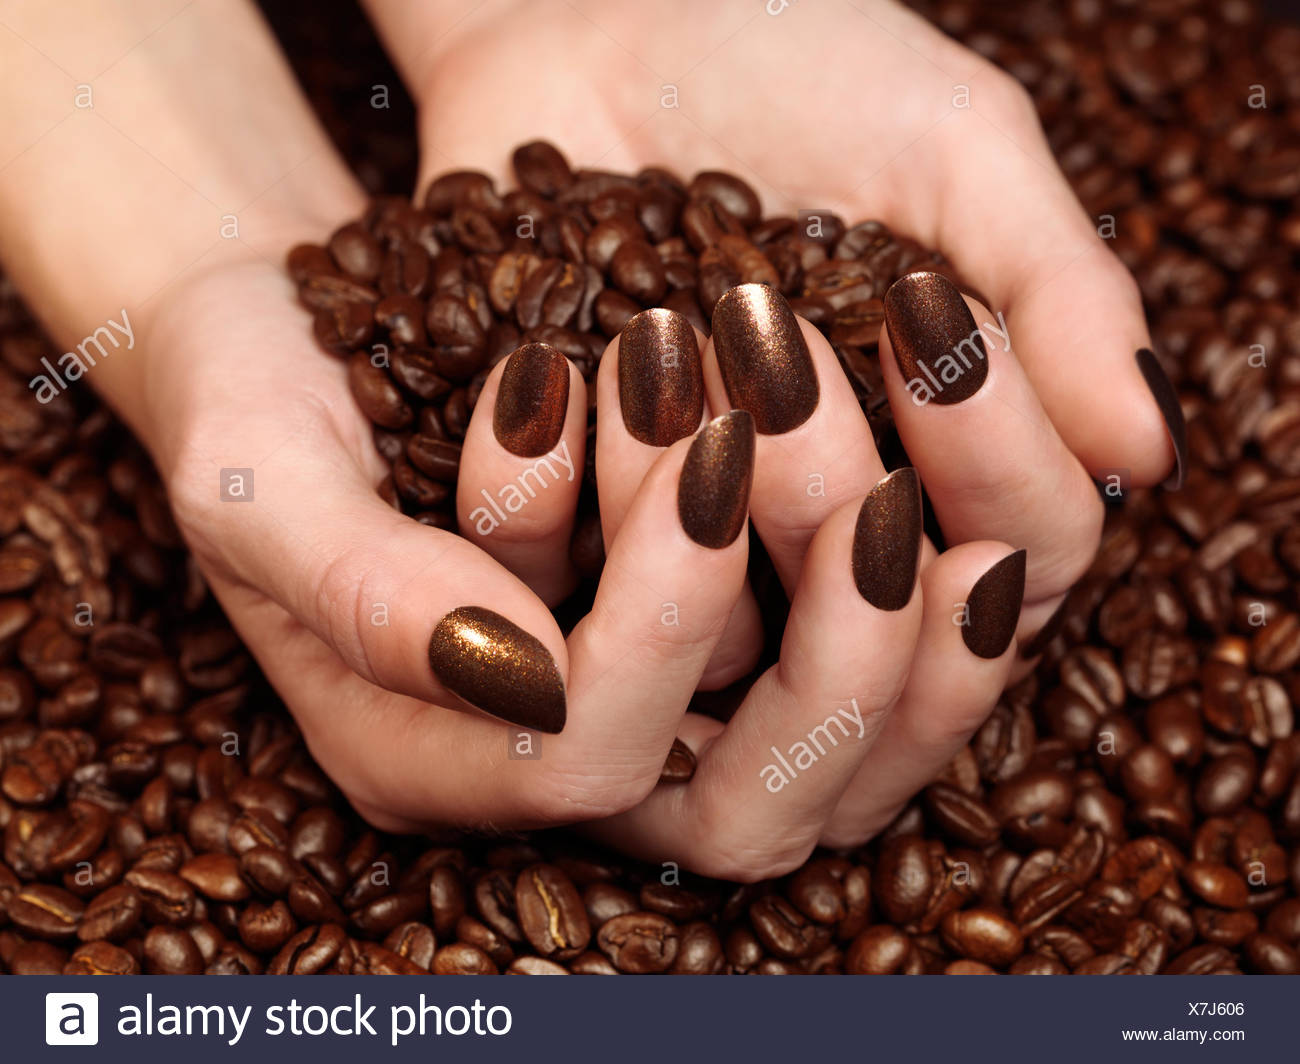 Woman's hands holding coffee beans in her hands, with matching brown nail polish - Stock Image